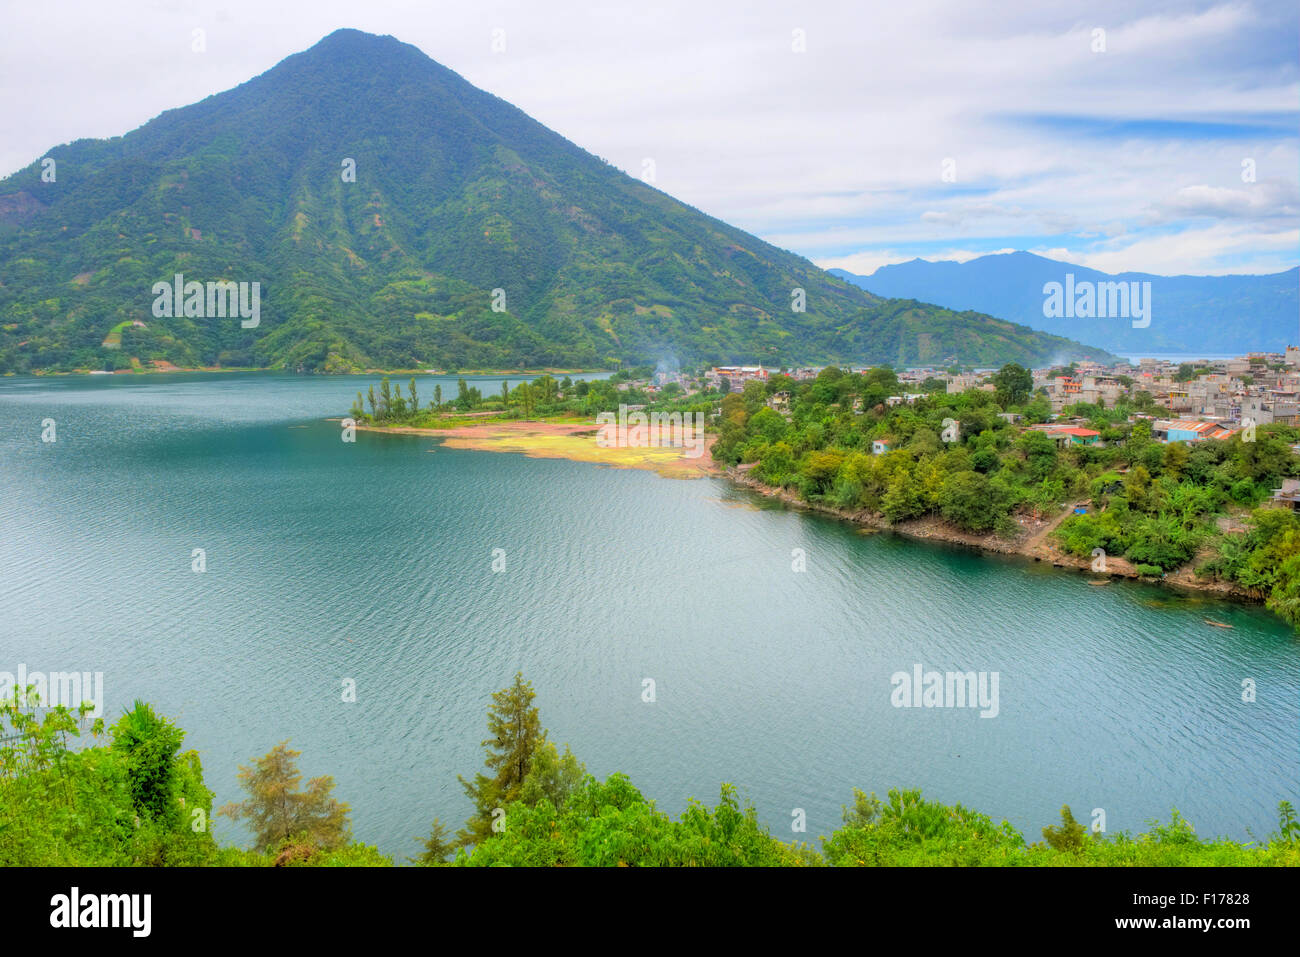 A view of lake Atitlan in Guatemala, Central America. - Stock Image